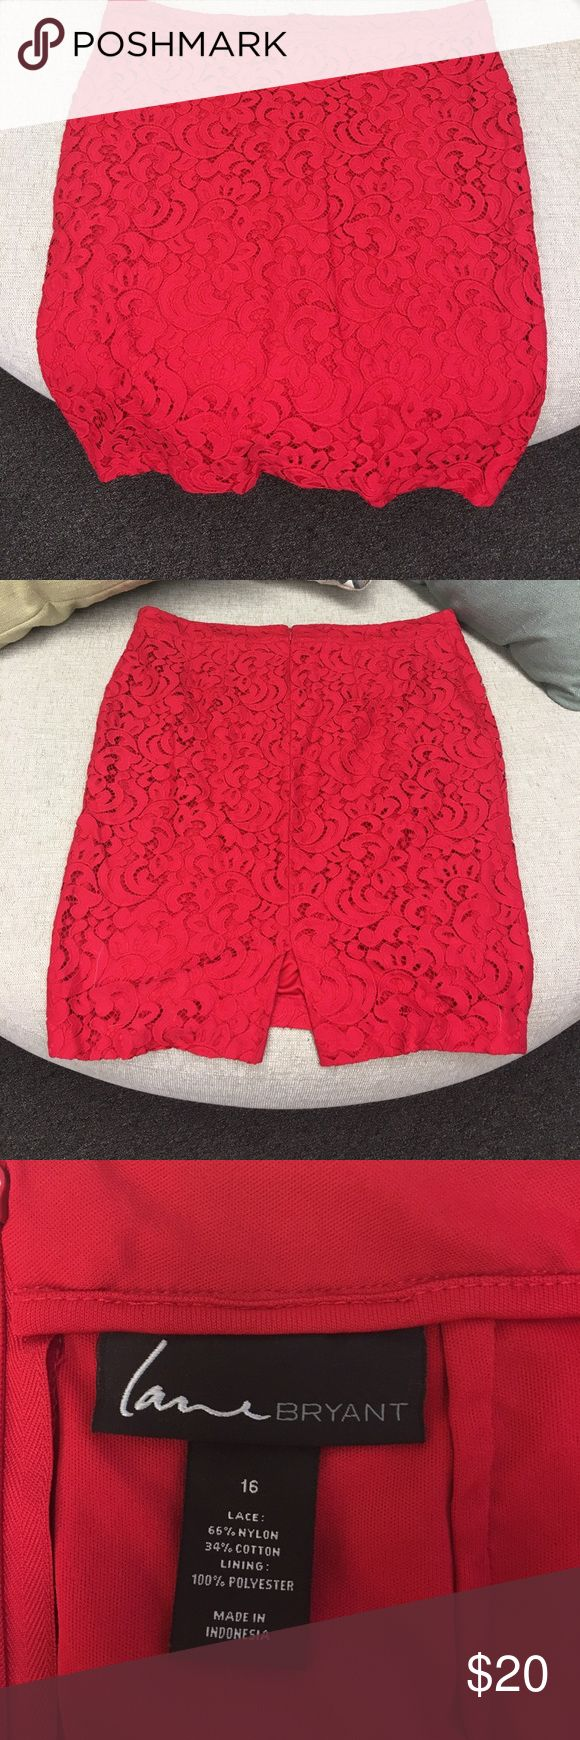 Bright red pencil skirt from Lane Bryant Red lace pencil skirt.  NWOT.   Red lace skirt with red lining. Lane Bryant Skirts Pencil